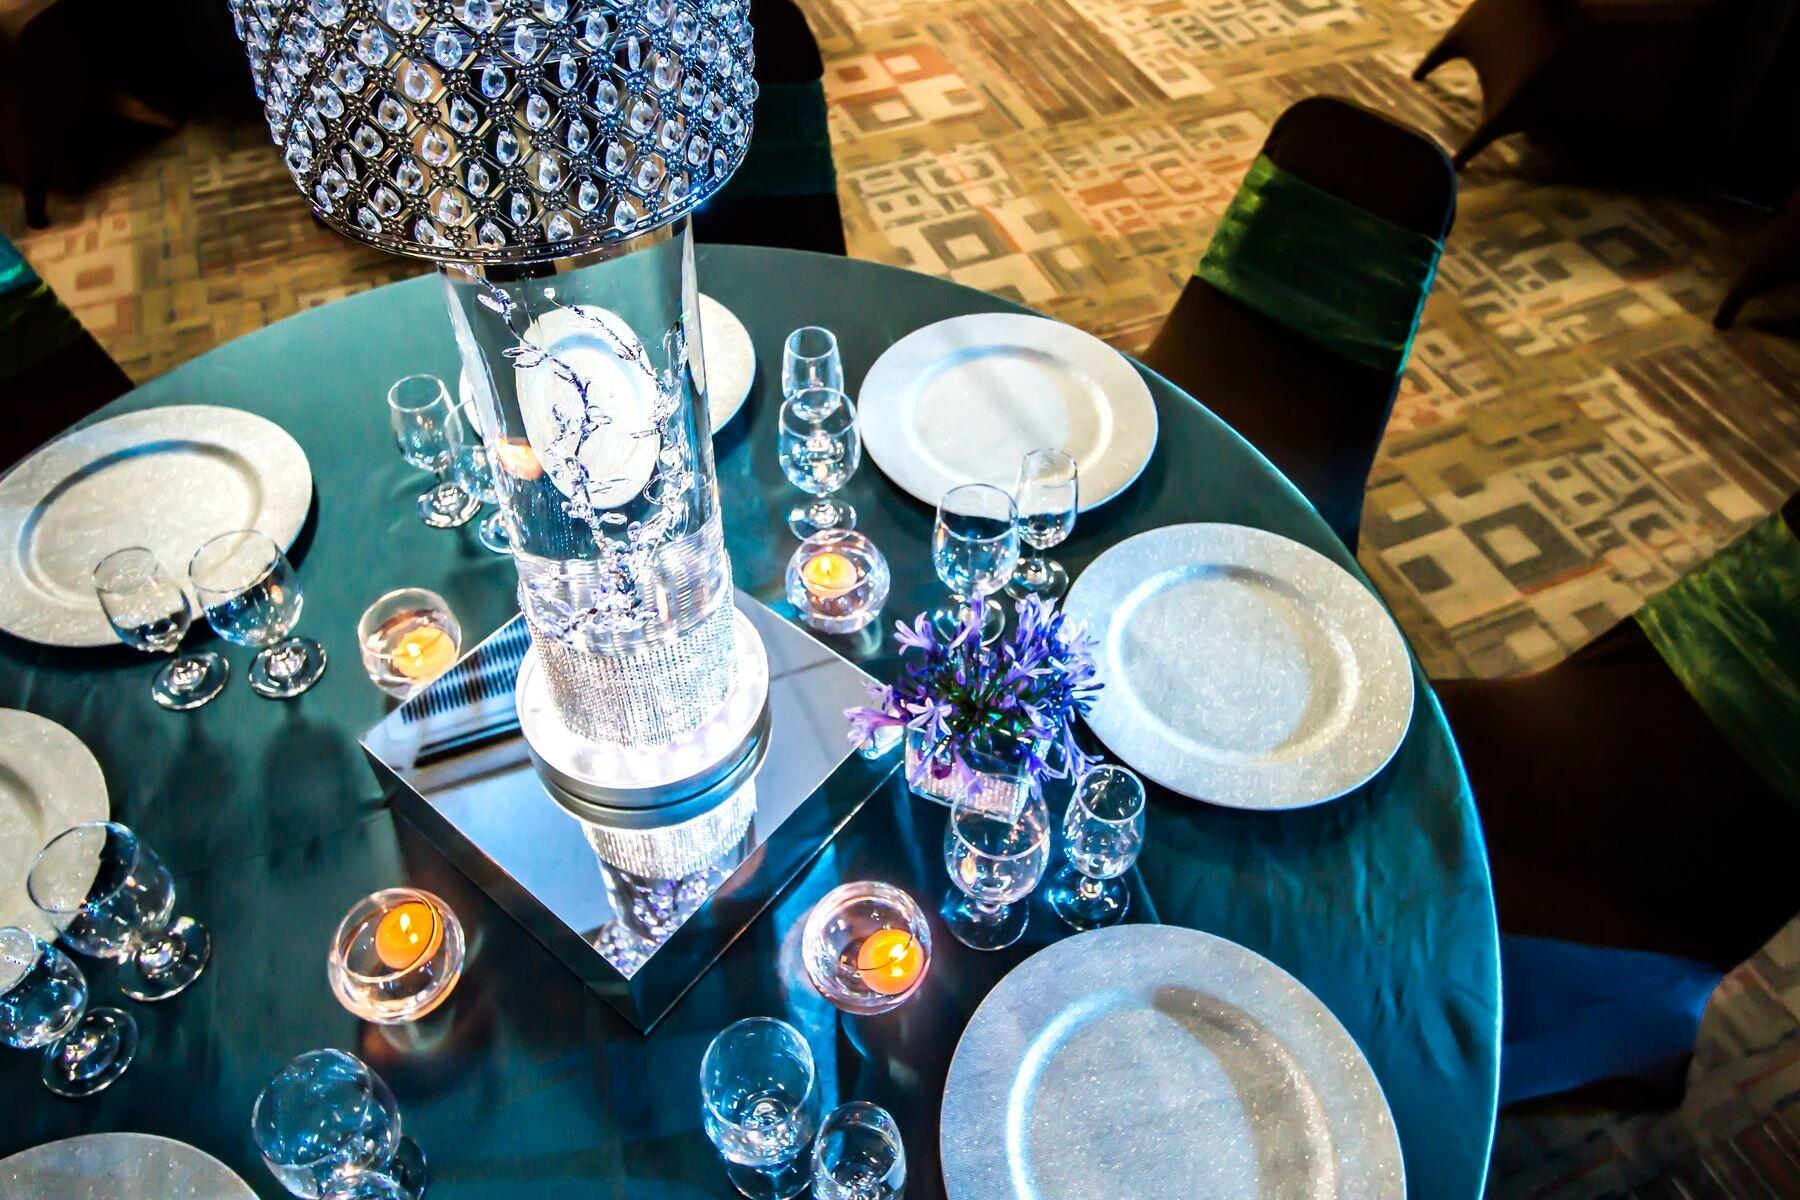 View of place settings and centerpieces on banquet table from ab